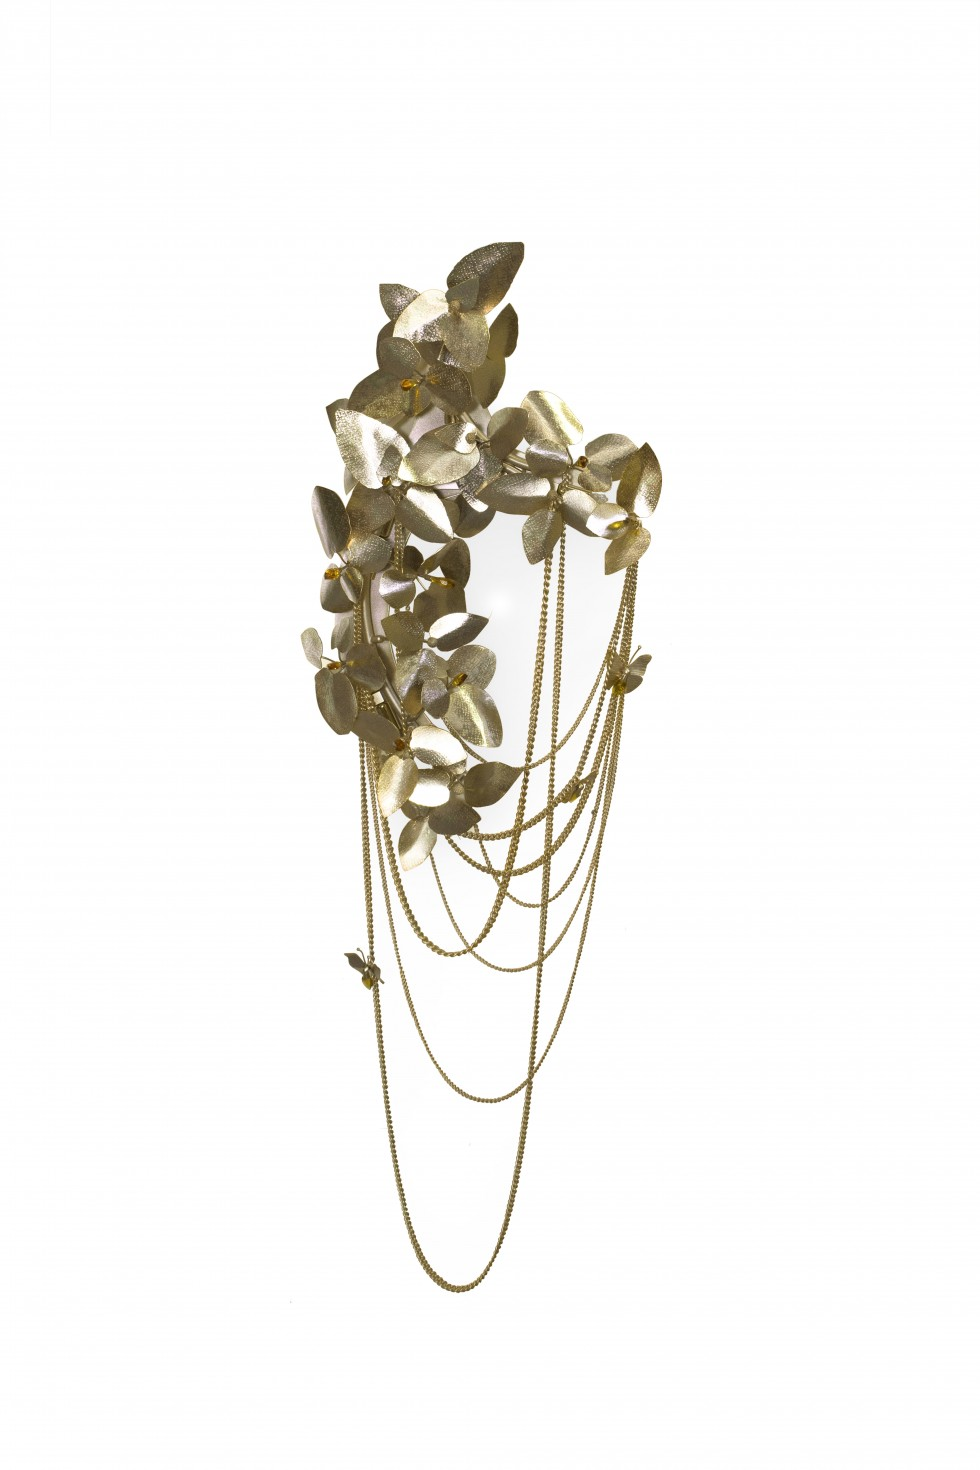 mcqueen-wall-01 wall sconce Unique wall sconce's design that you will love mcqueen wall 01 e1459412075540